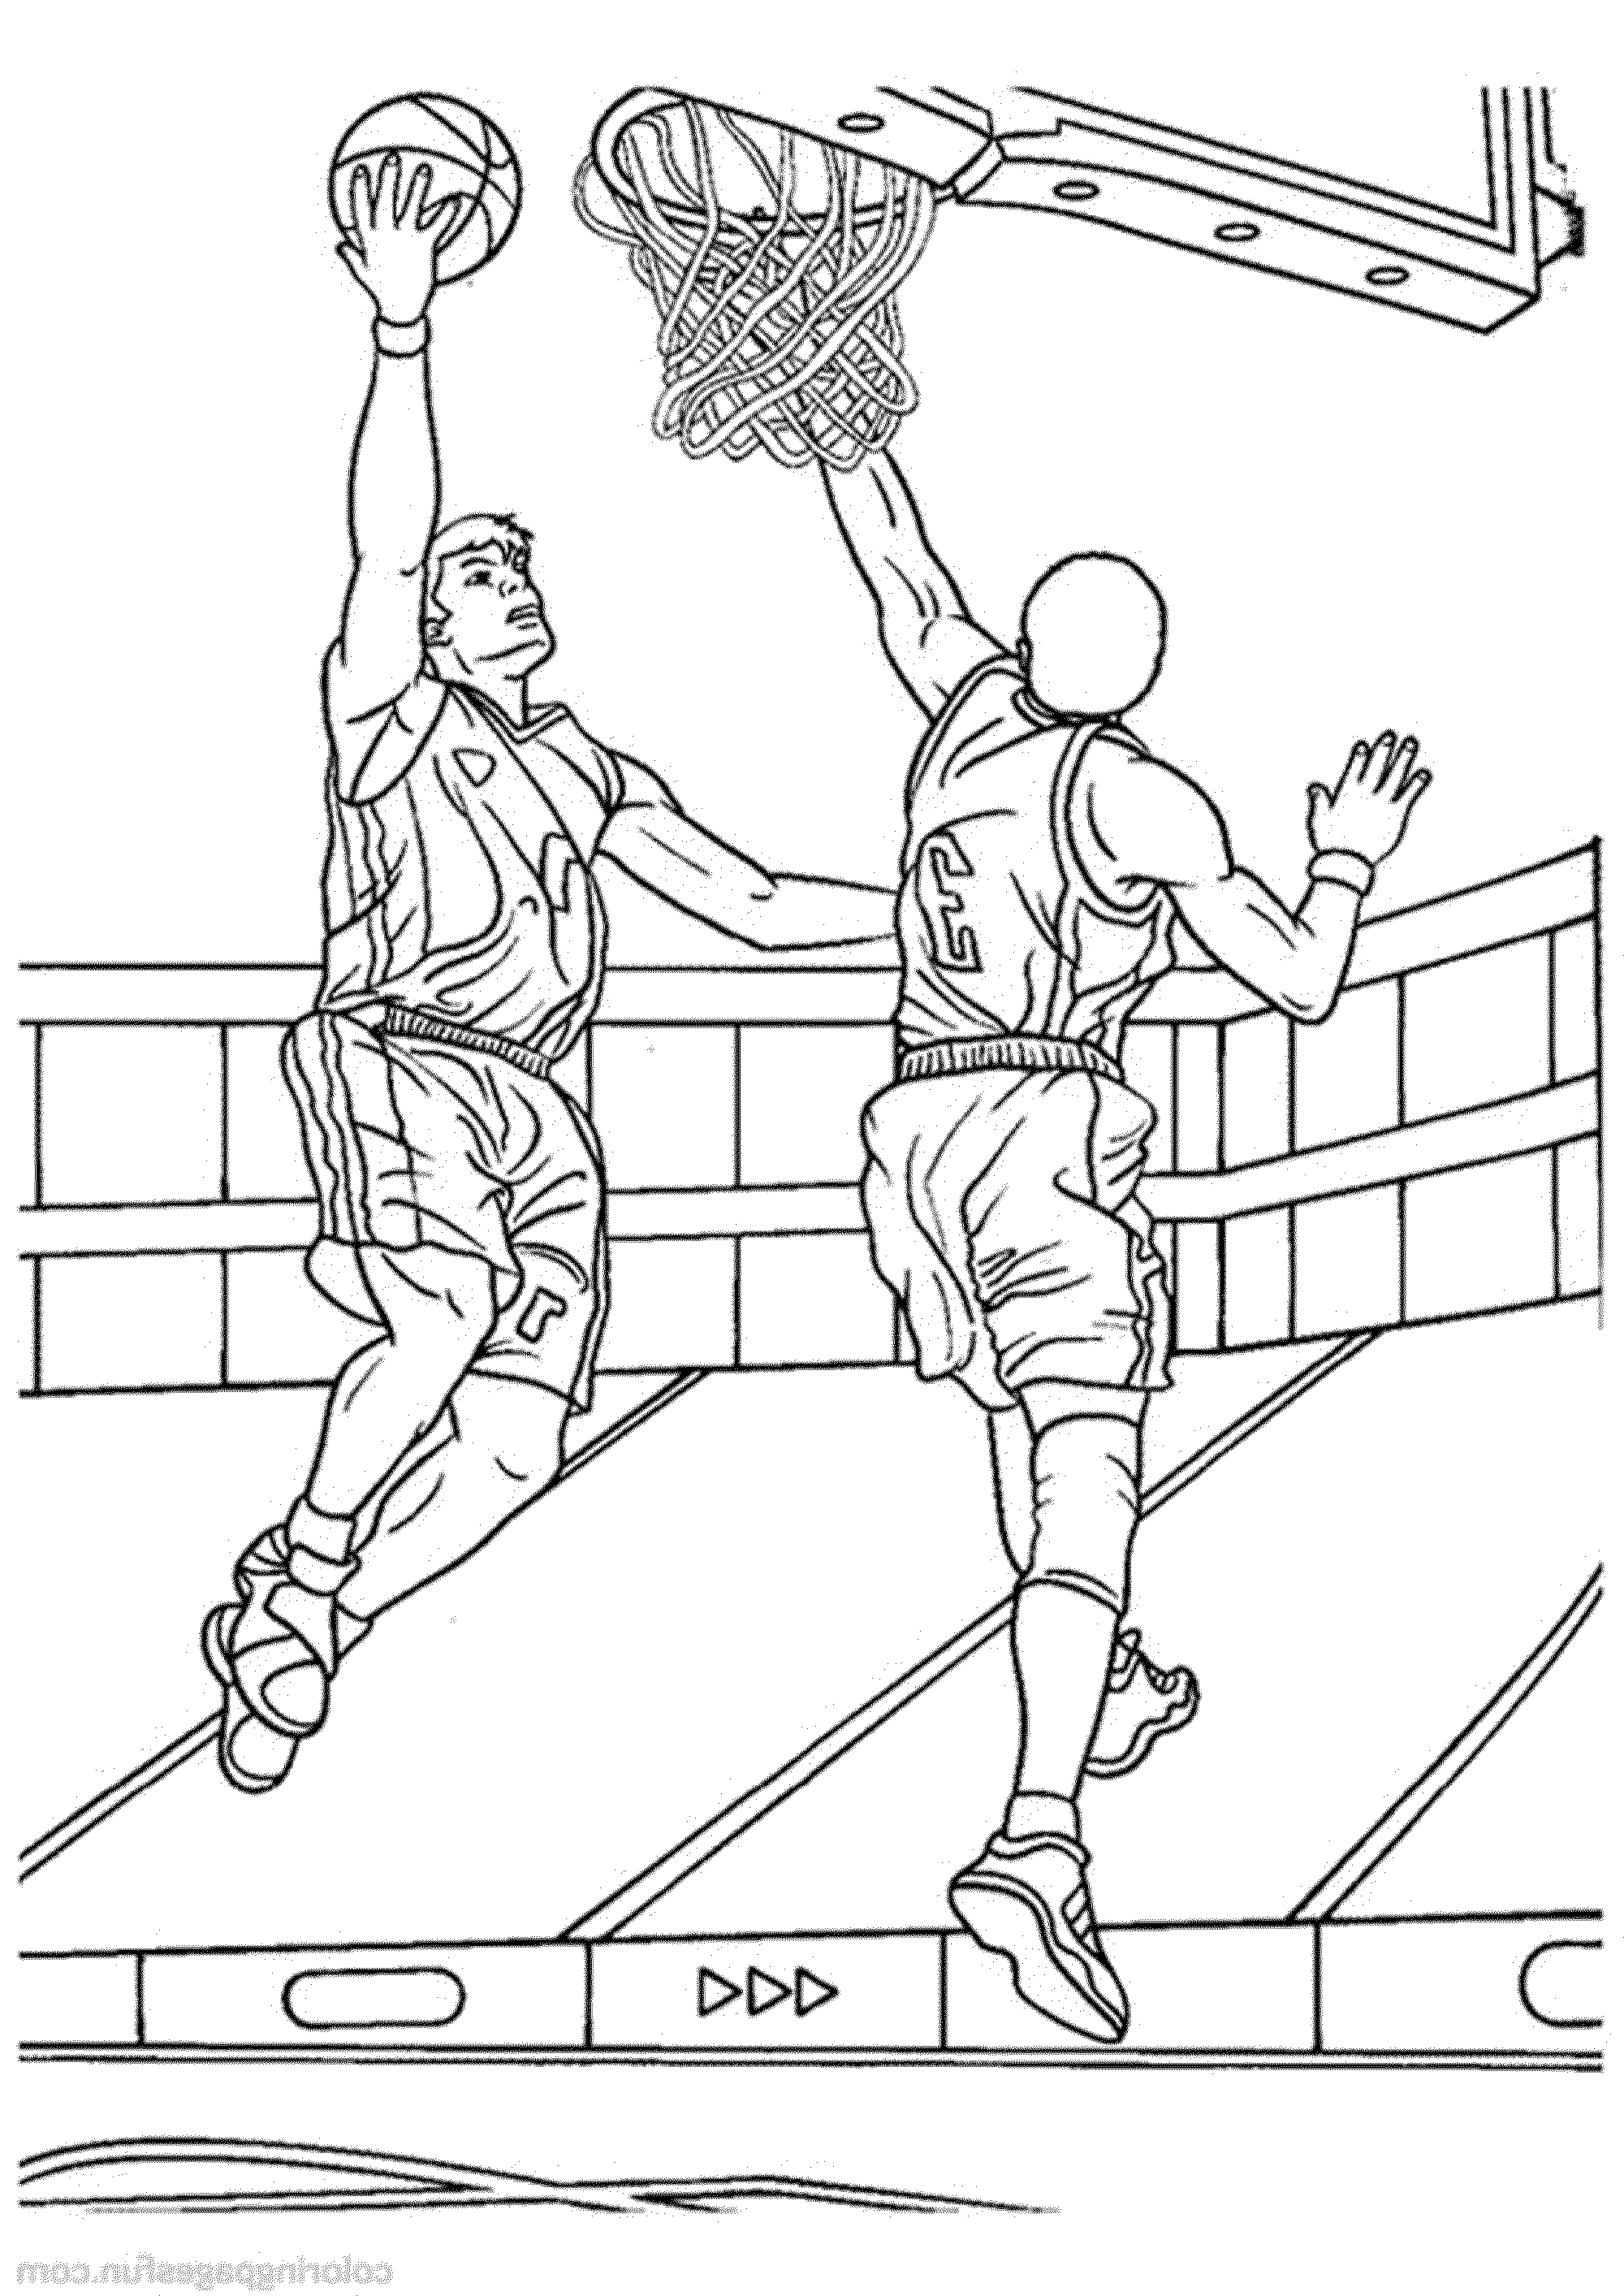 basketball coloring basketball drawing ideas free download on clipartmag basketball coloring